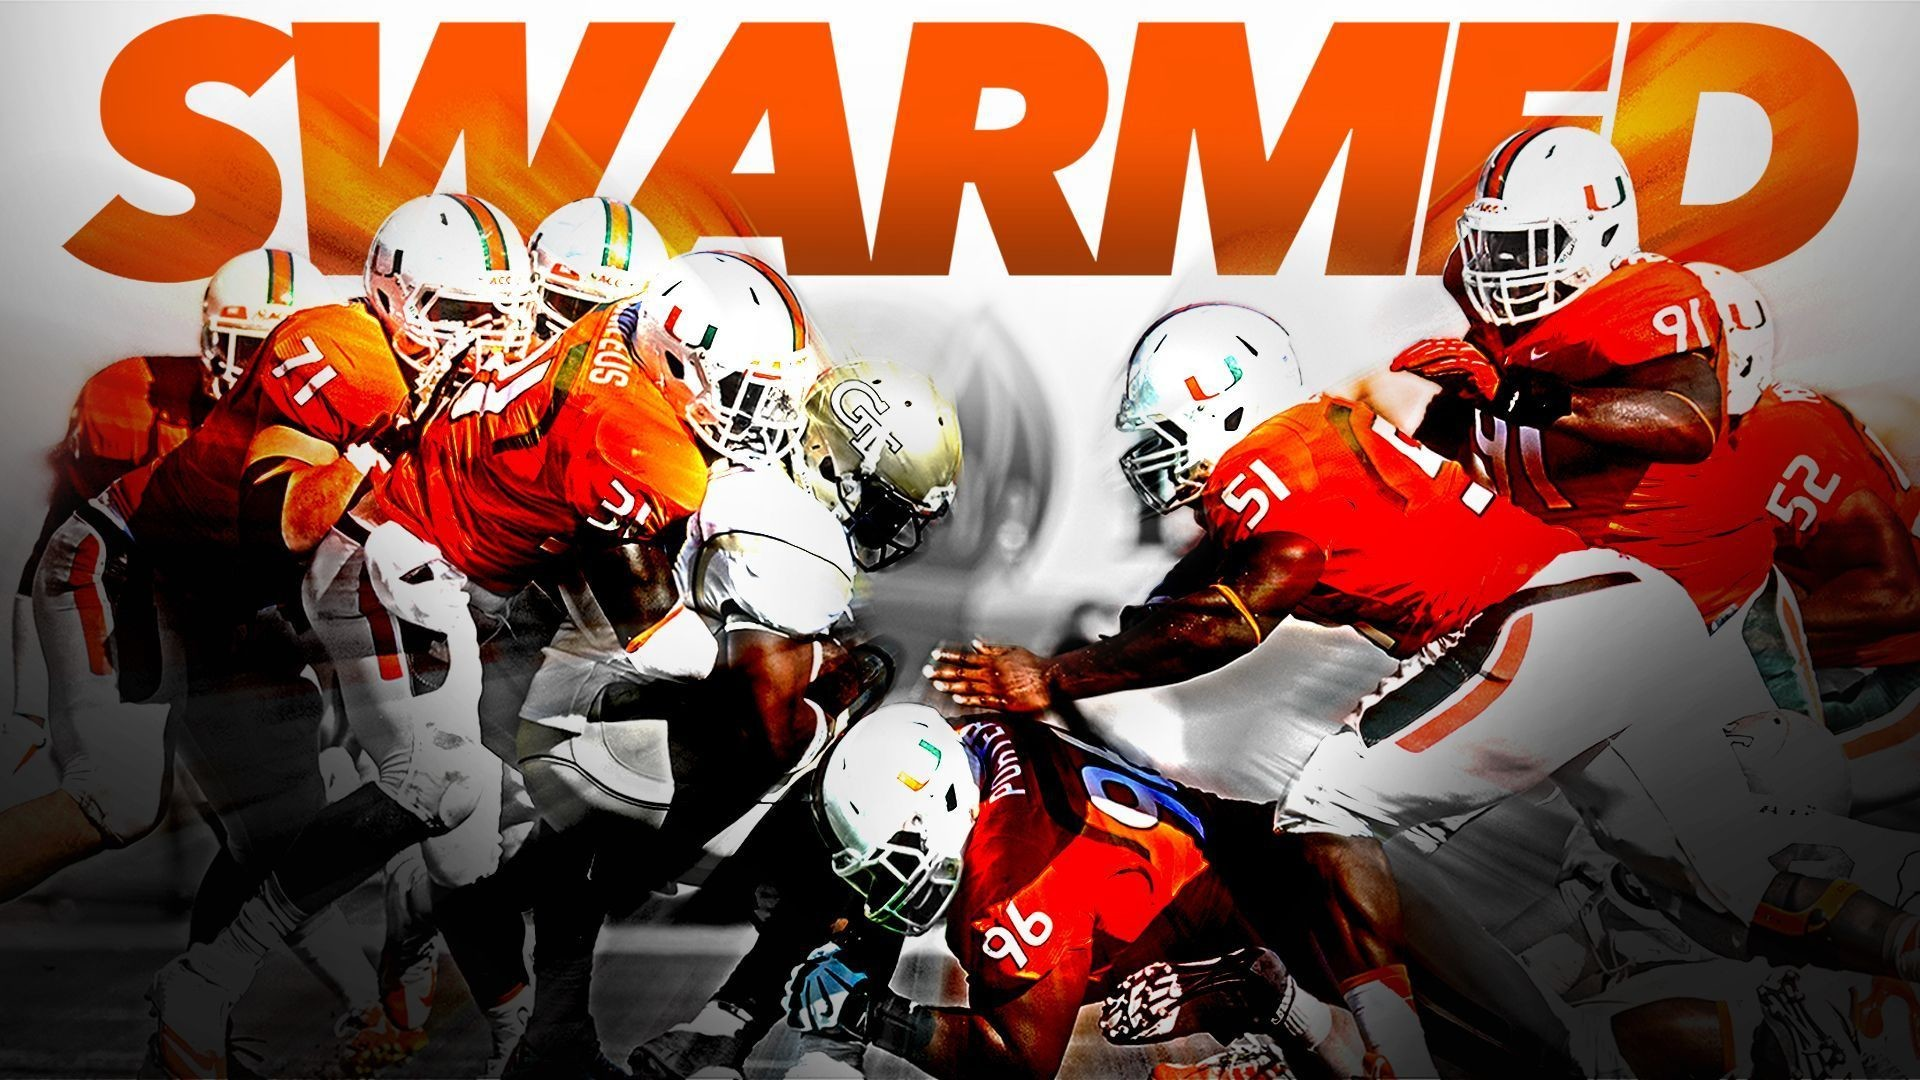 Miami canes wallpaper 59 images 1920x1080 2013 14 wallpapers university of miami hurricanes official voltagebd Choice Image